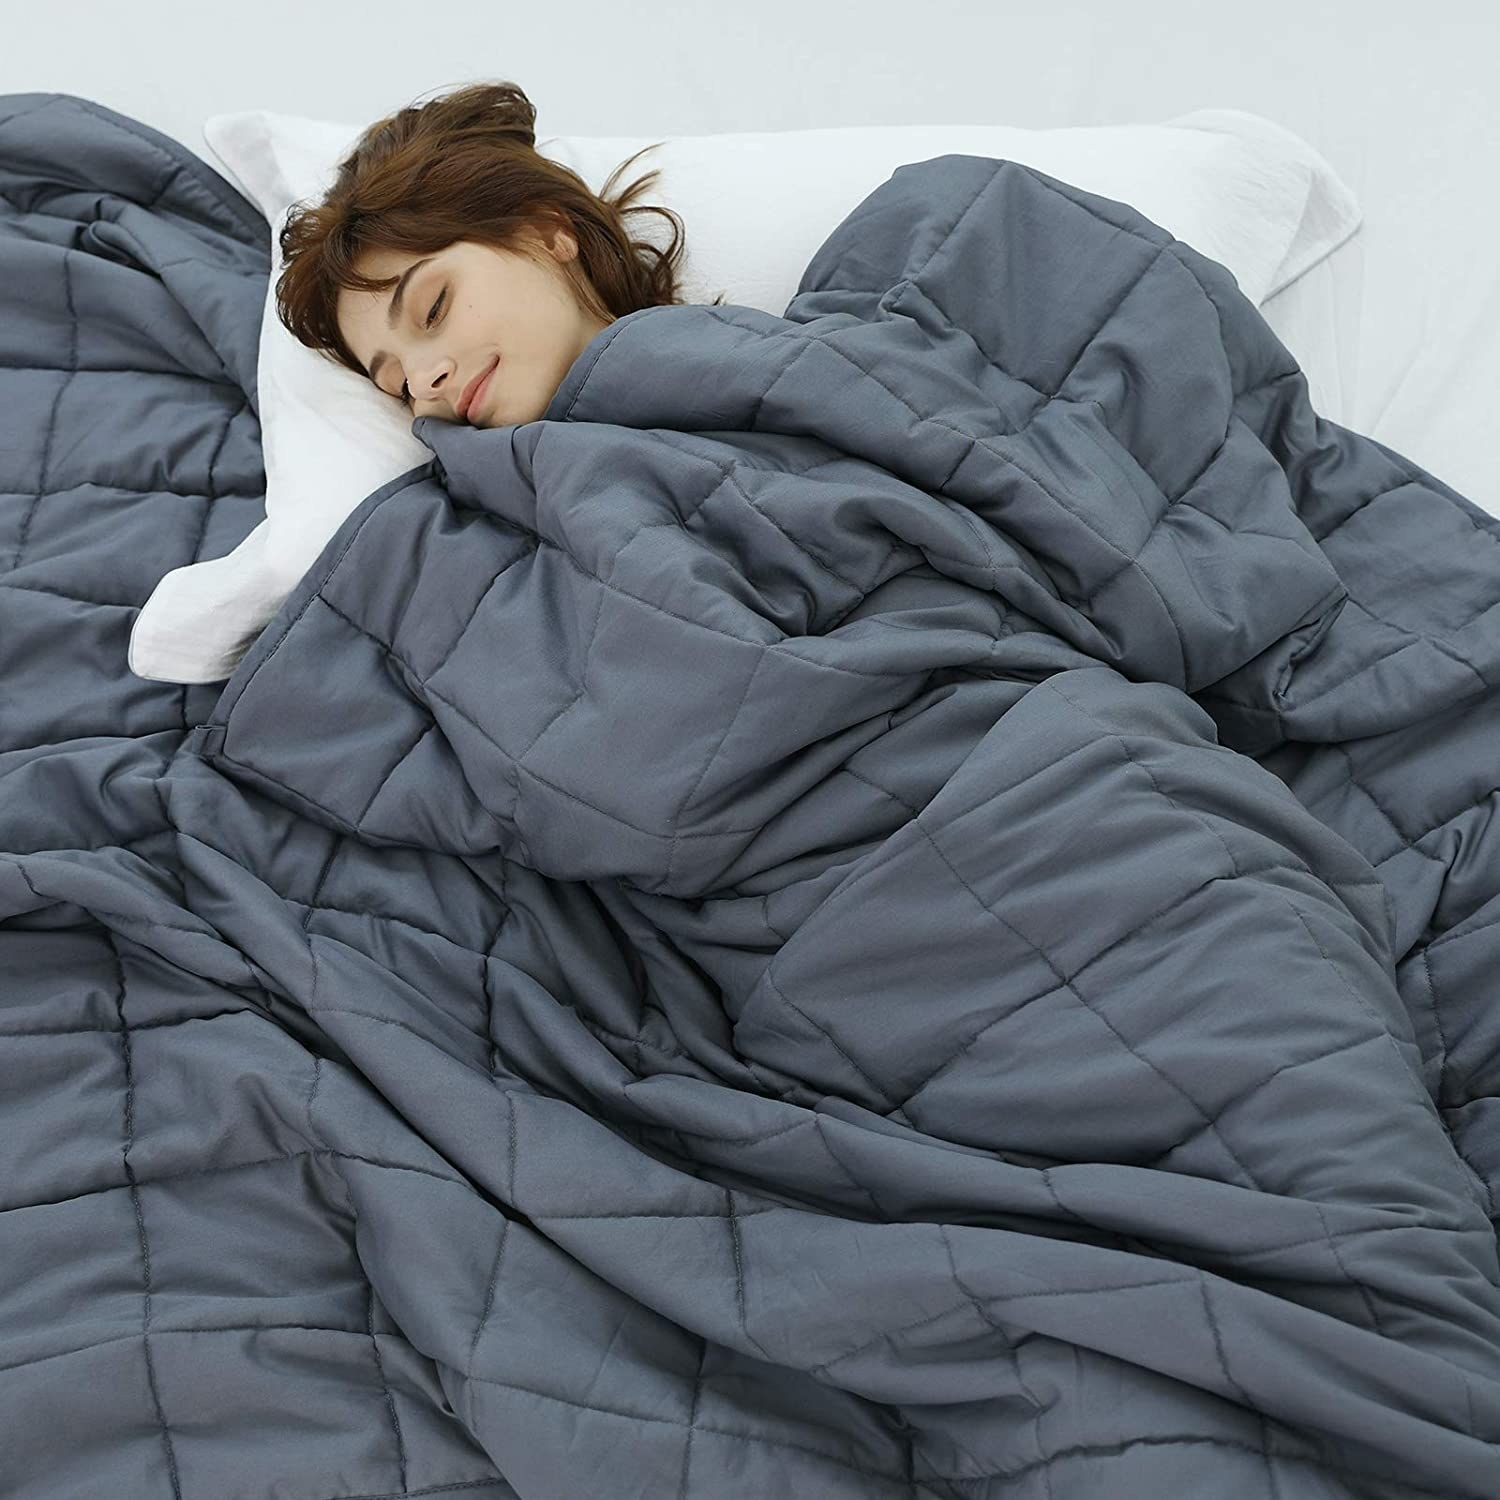 Model sleeping under the gray quilted blanket